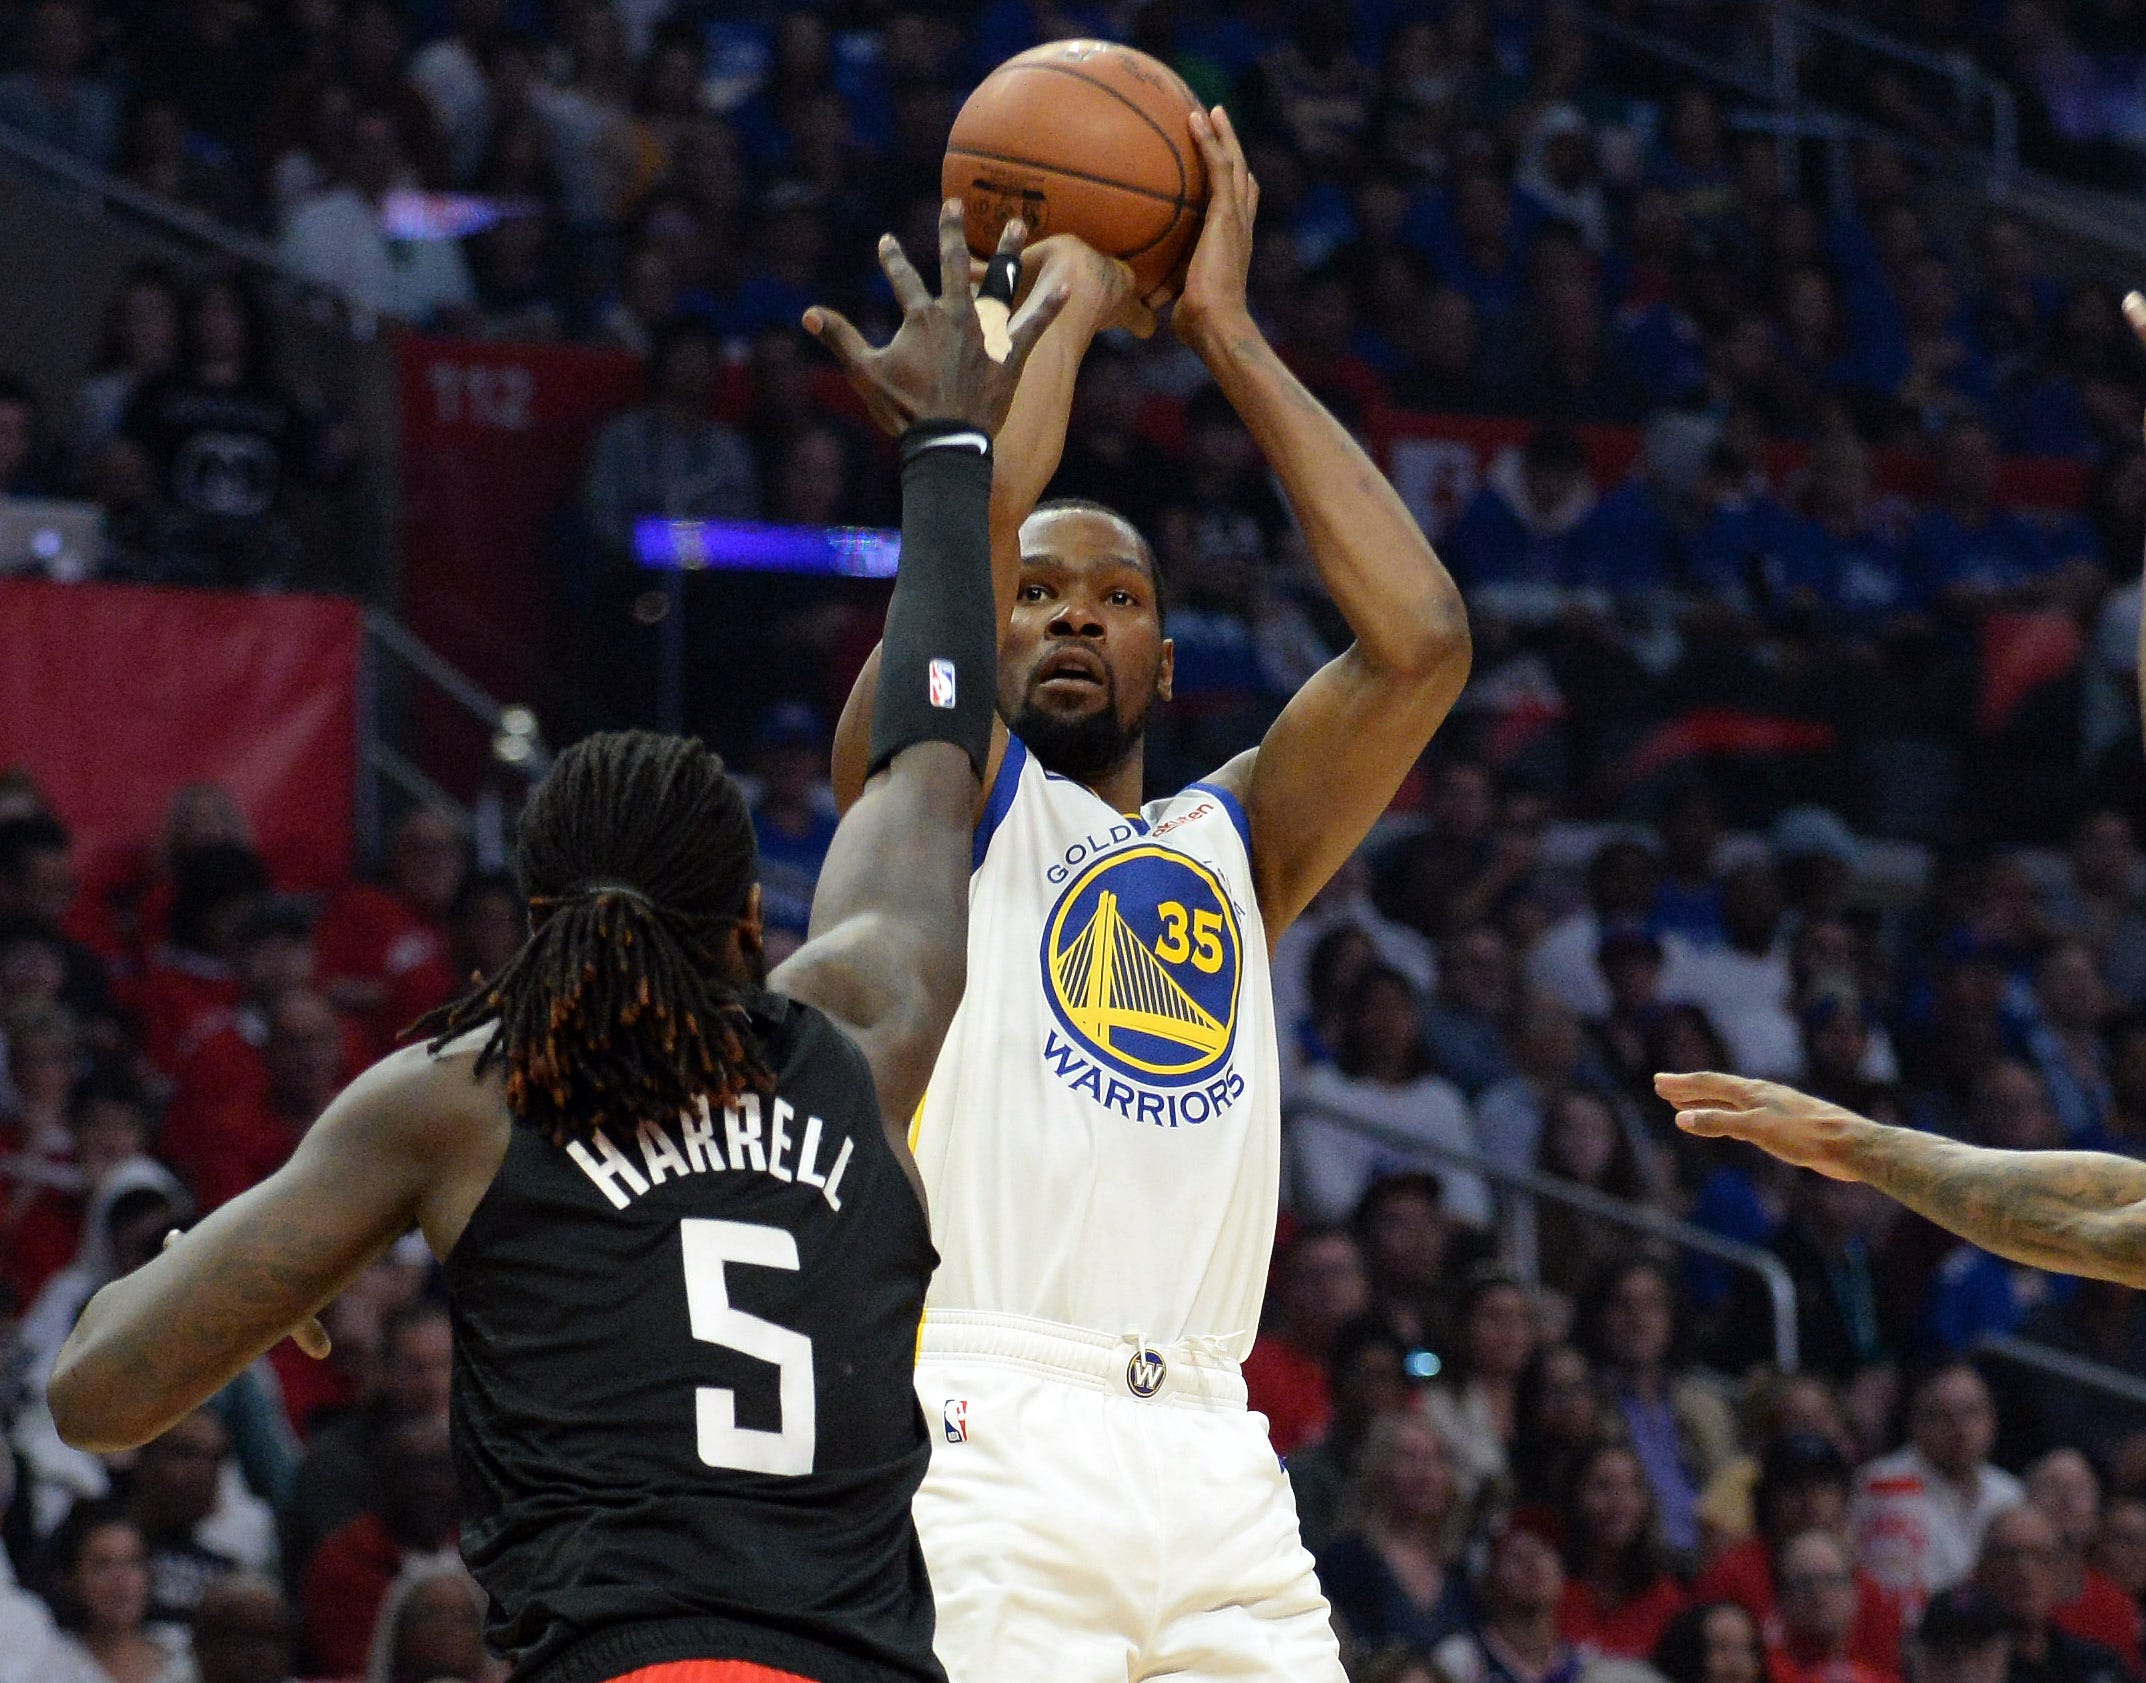 April 21: Warriors forward Kevin Durant (35) rises and shoots over Clippers defender Montrezl Harrell (5) during Game 4 in Los Angeles.